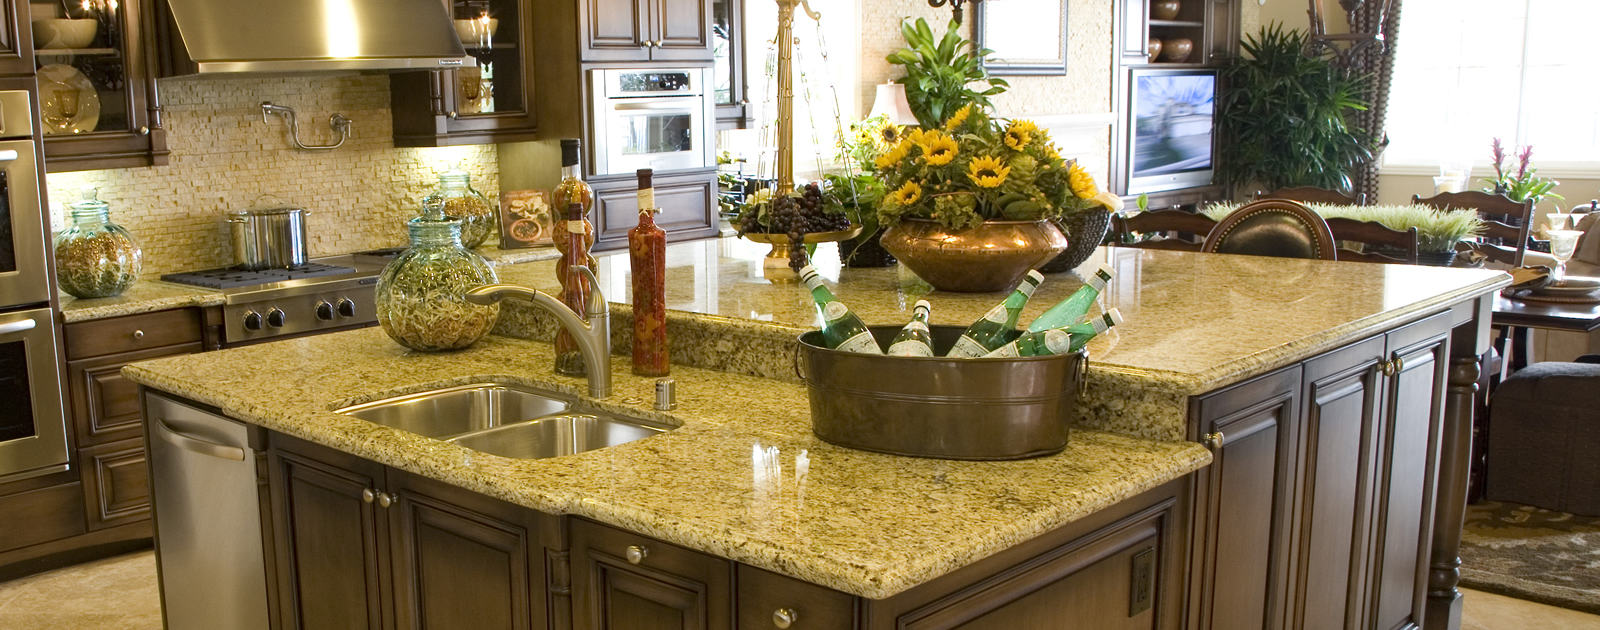 Granite Countertops Mn : ... Top Rated Discount Granite Countertop Installation - Nature\s Stone